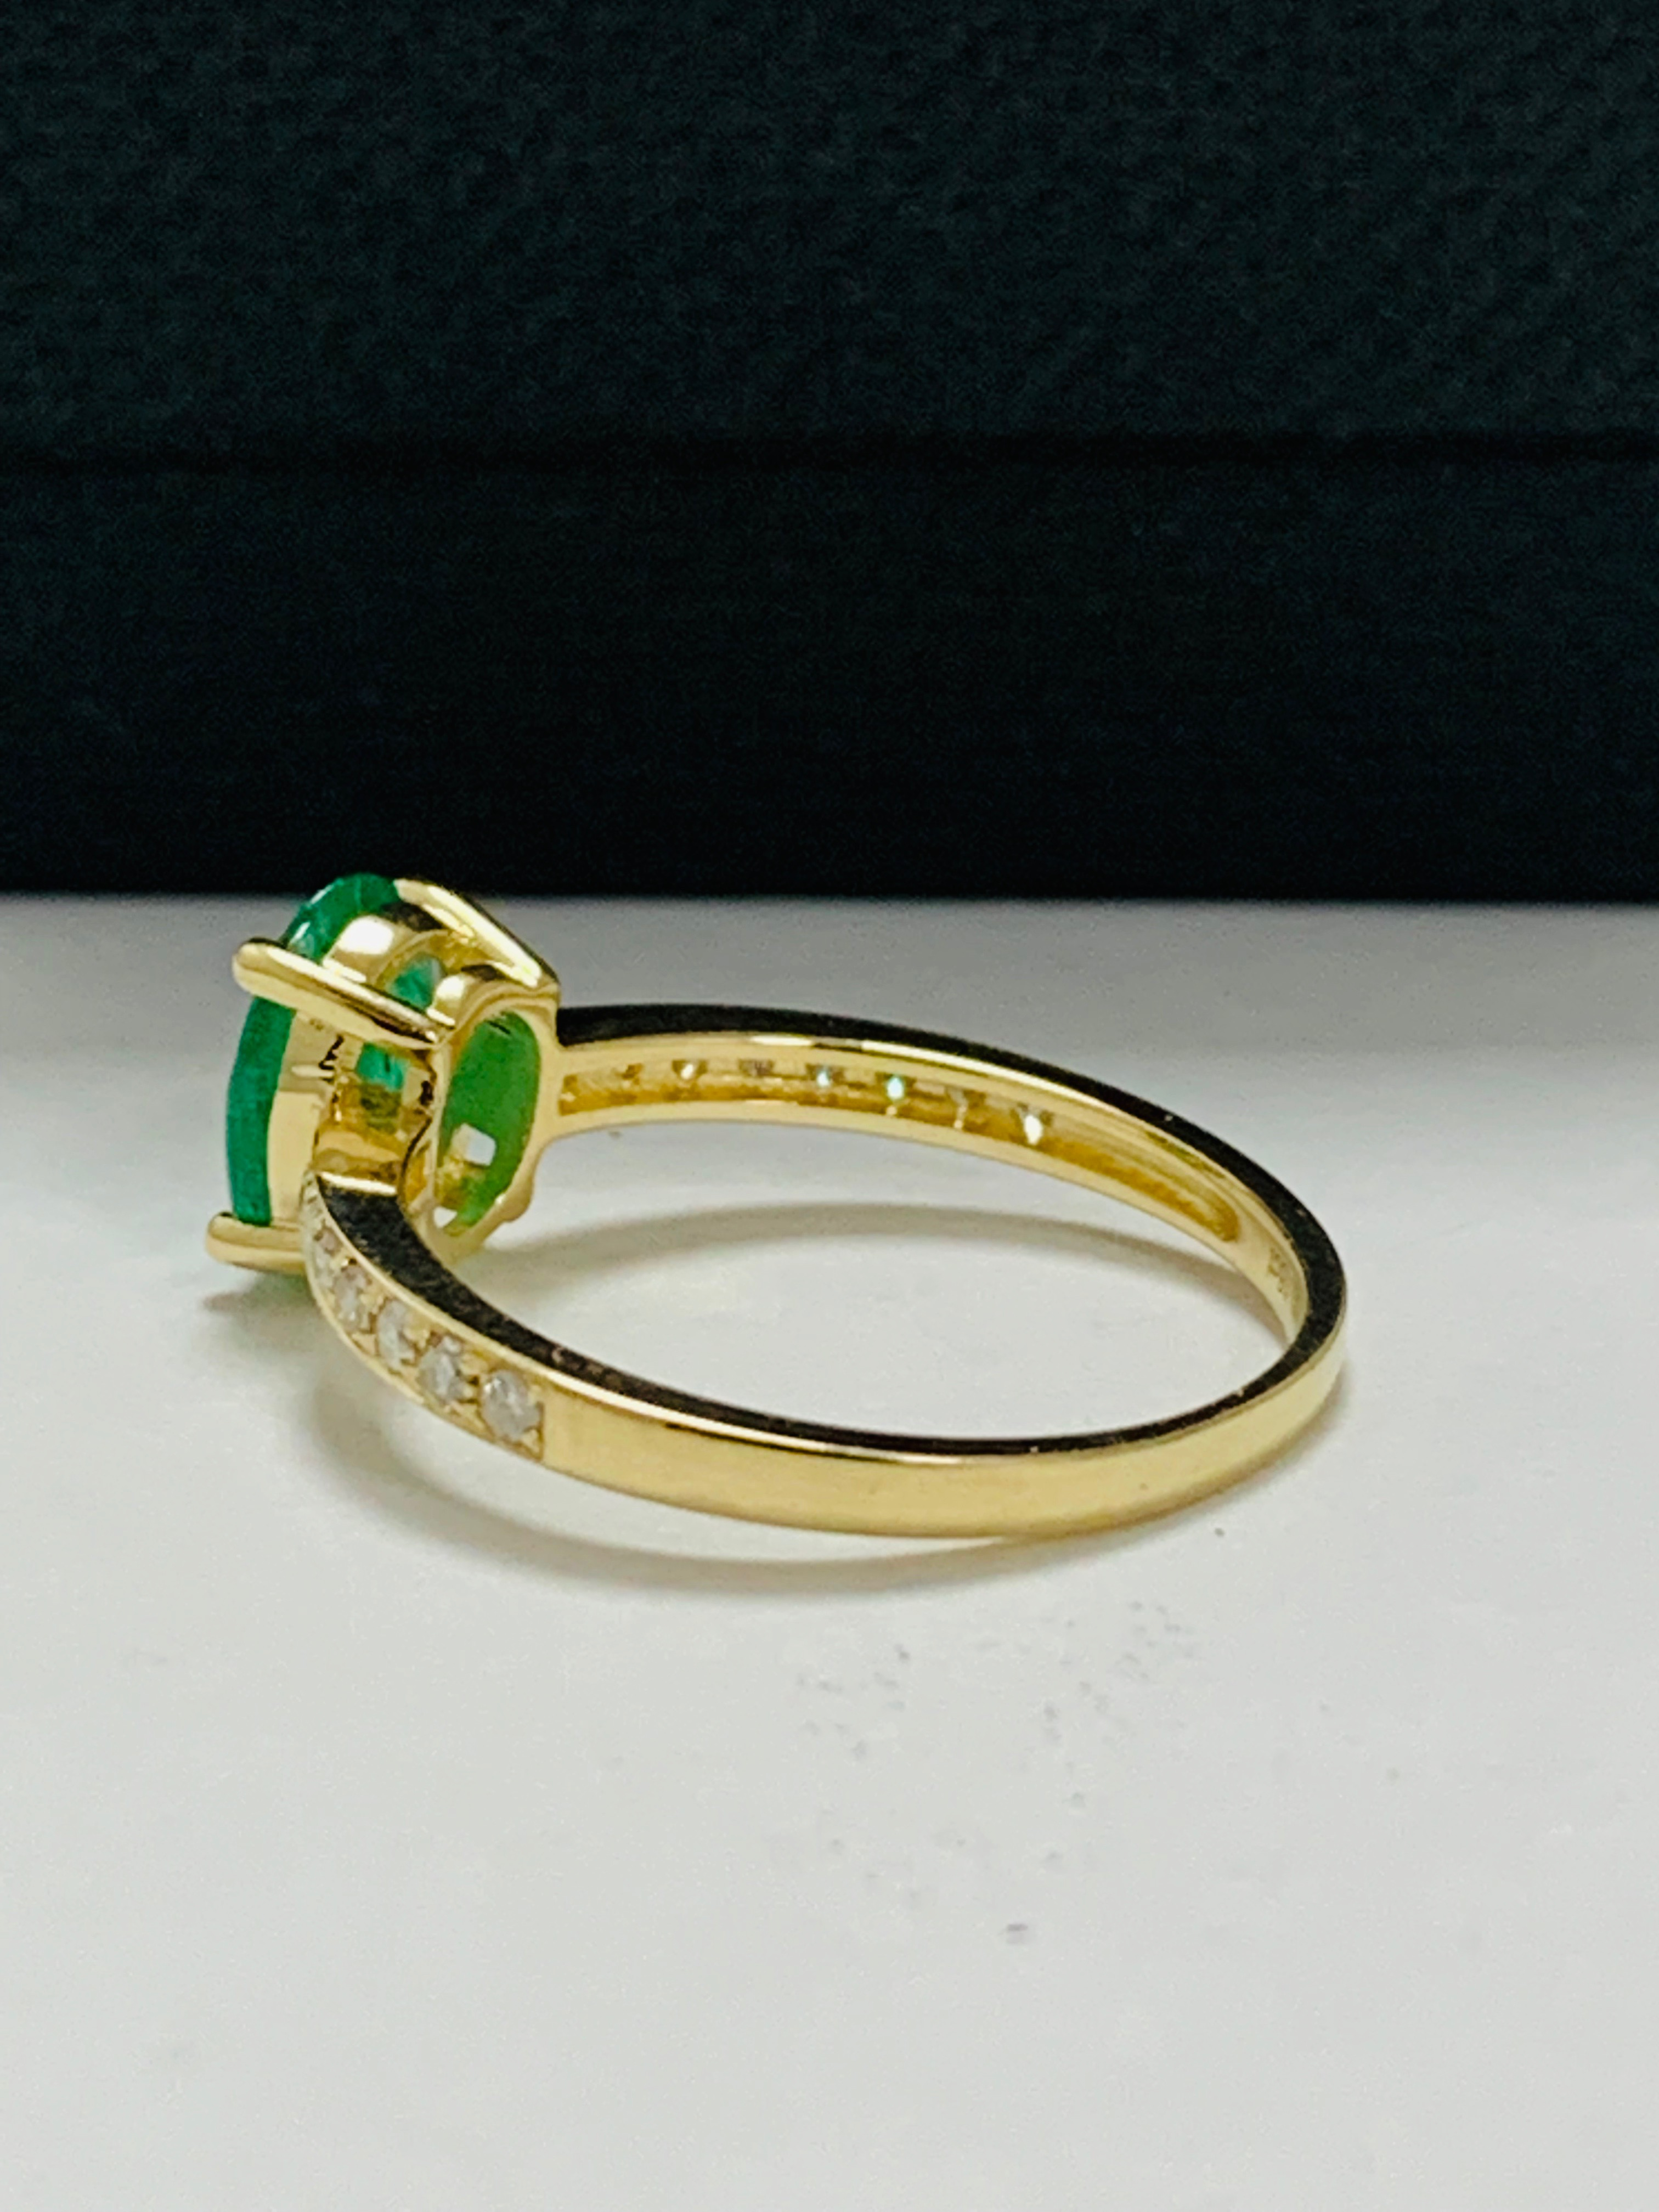 Lot 41 - 14ct yellow gold emerald and diamond ring